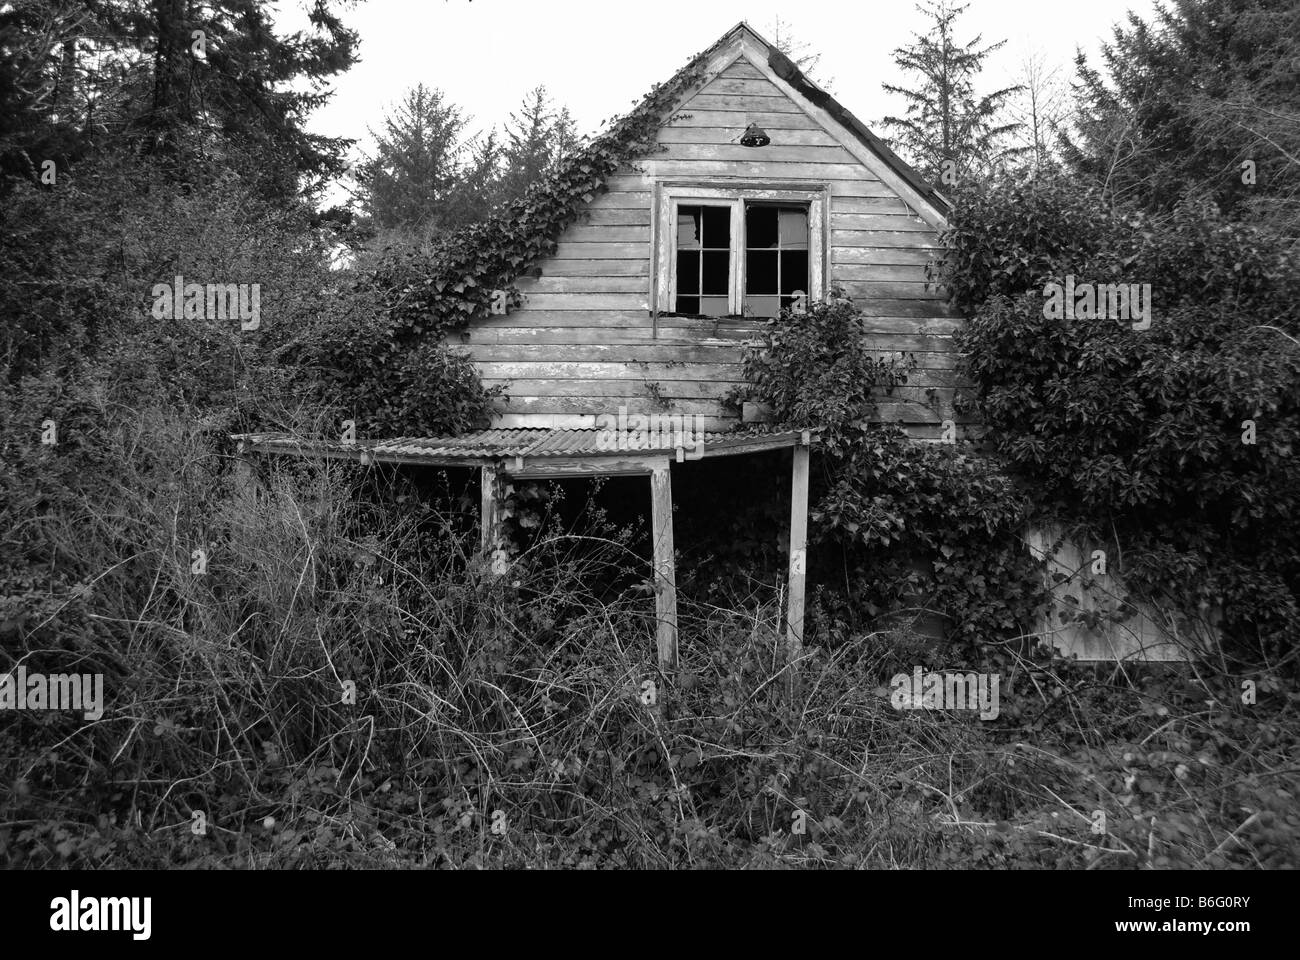 Old abandoned house falling down - Stock Image